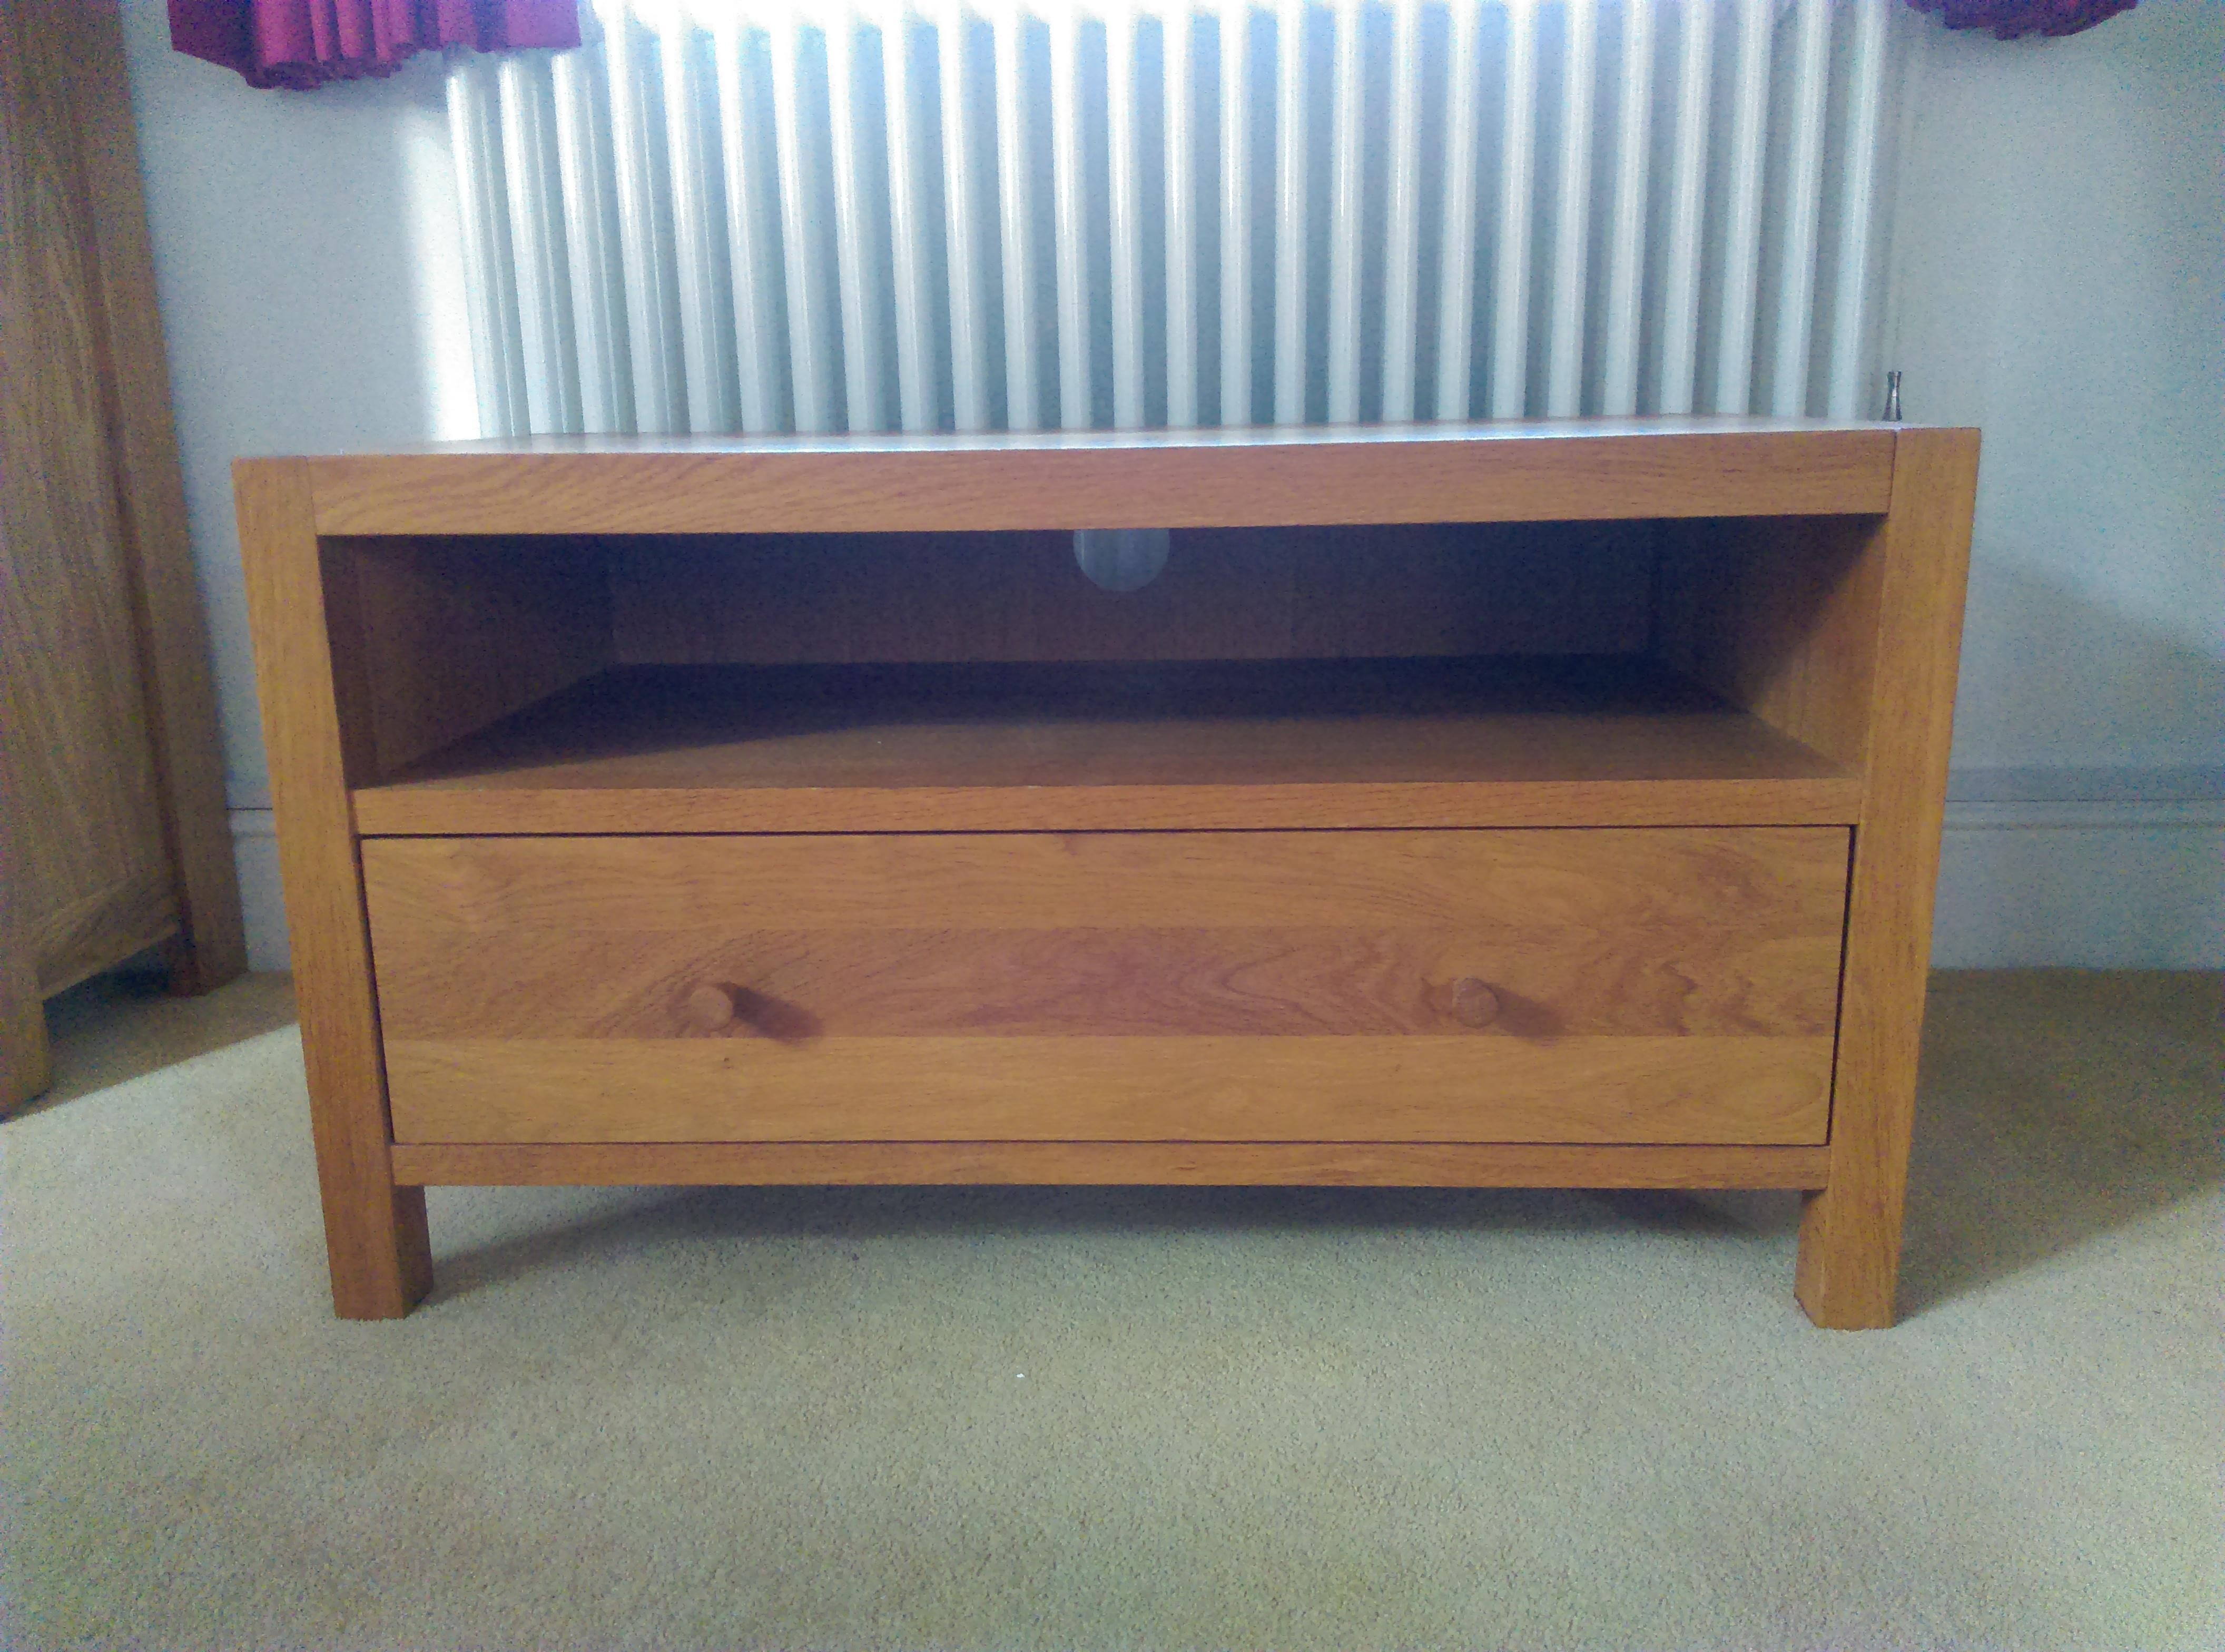 TV solid oak cabinet by Laura Ashley